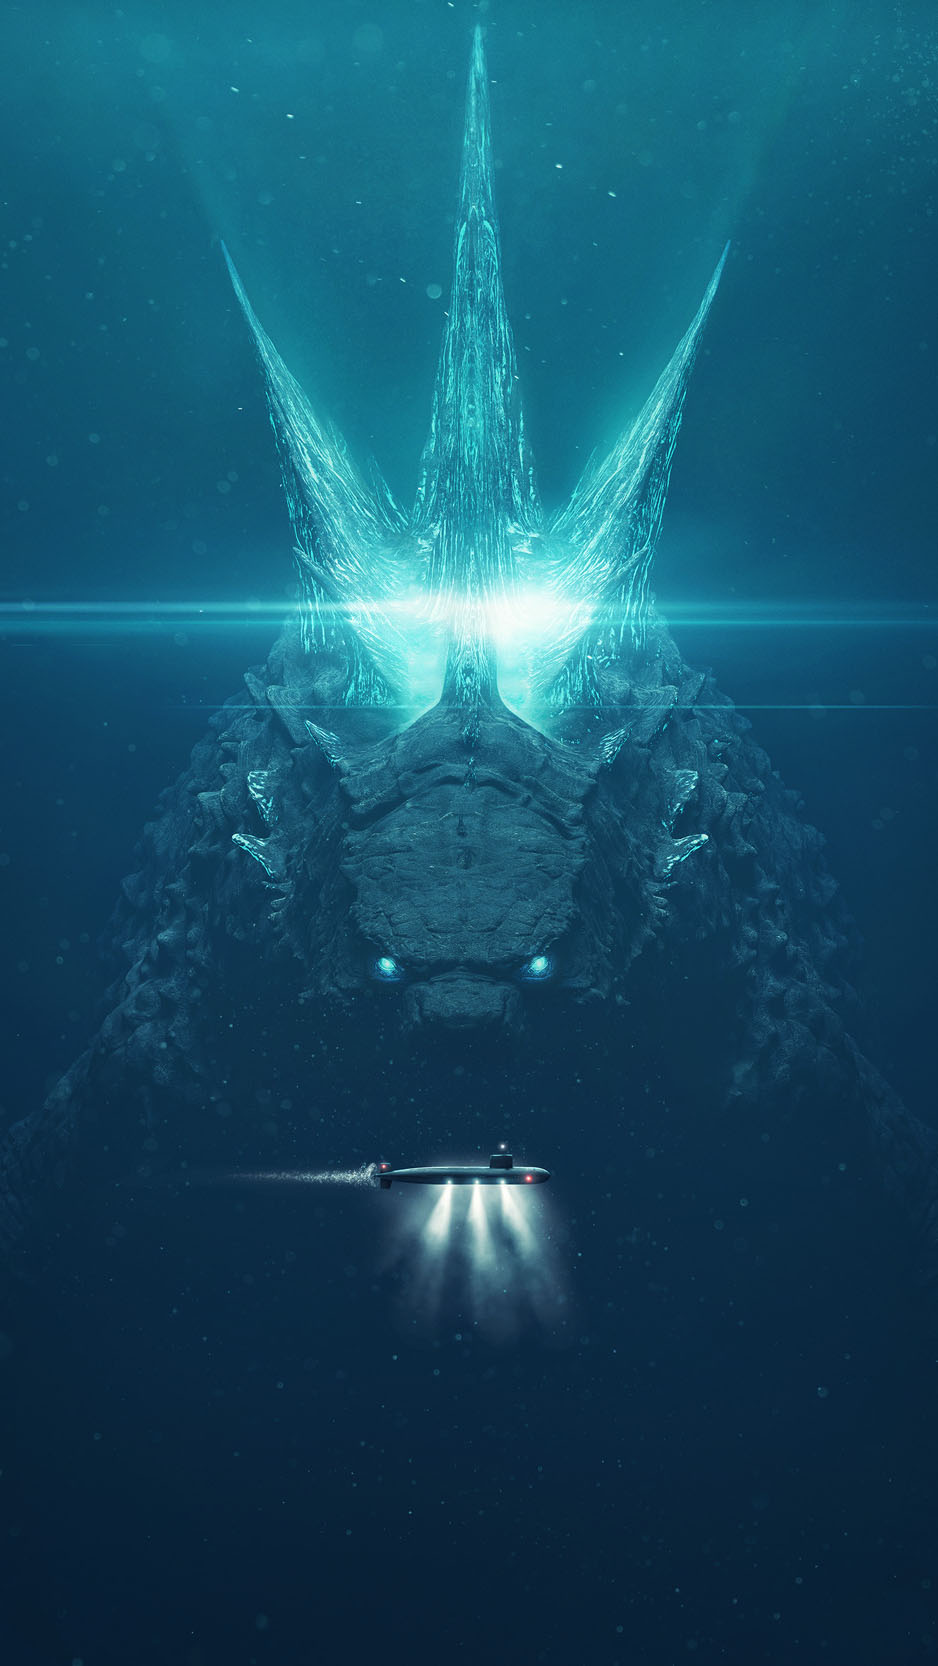 Godzilla vs Submarine iPhone Wallpaper